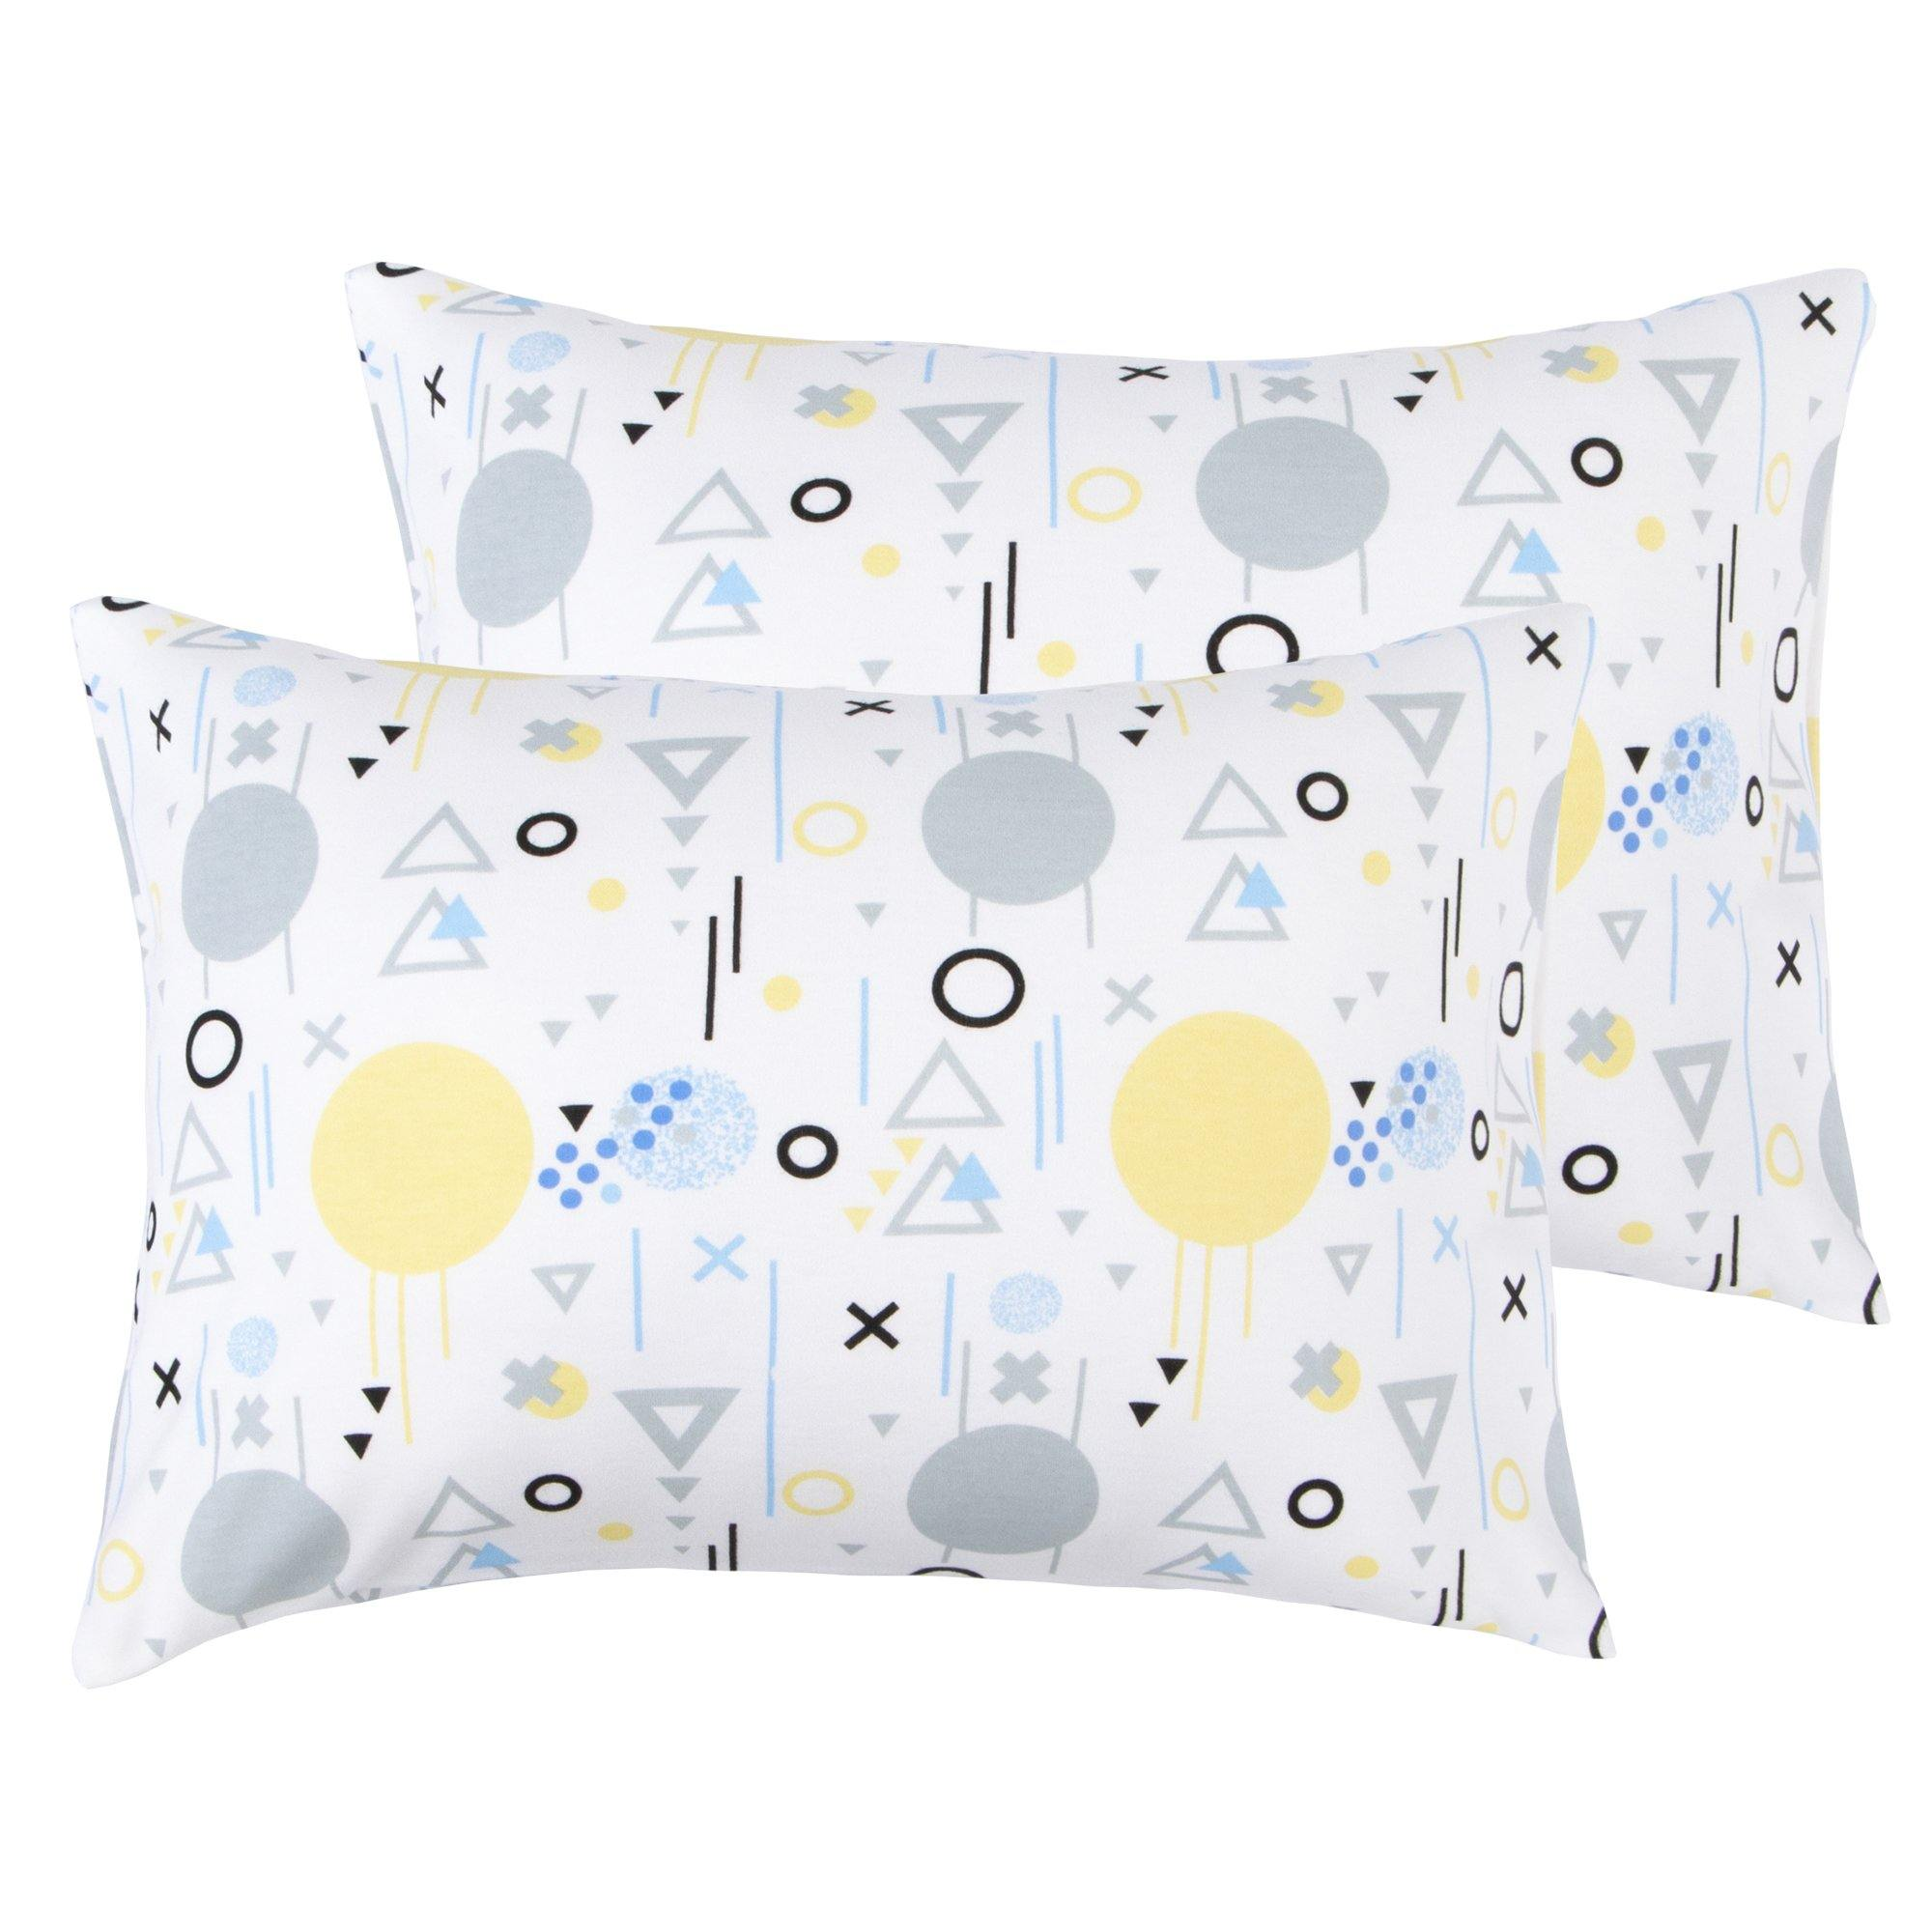 NTBAY 100% Natural Cotton Jersey Knit Toddler Pillowcases Set of 2 - NTBAY